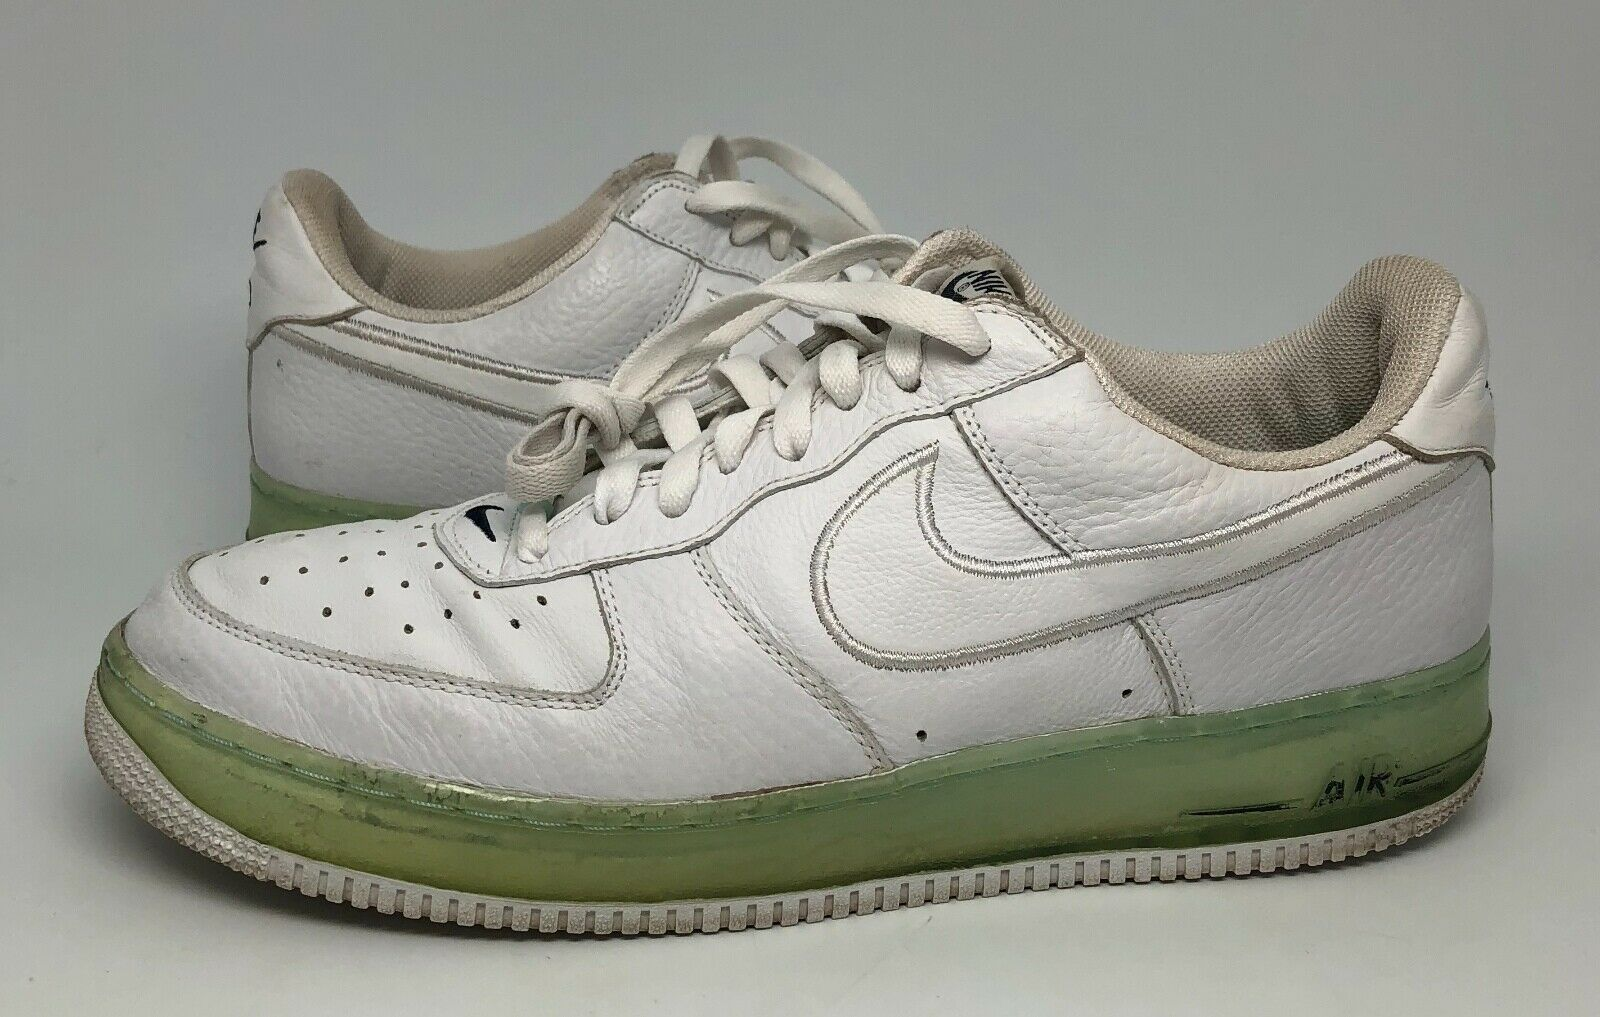 2005 Nike Air Force 1 One Premium Ice Cube Sneakers Size 13 White bluee Rare AF1